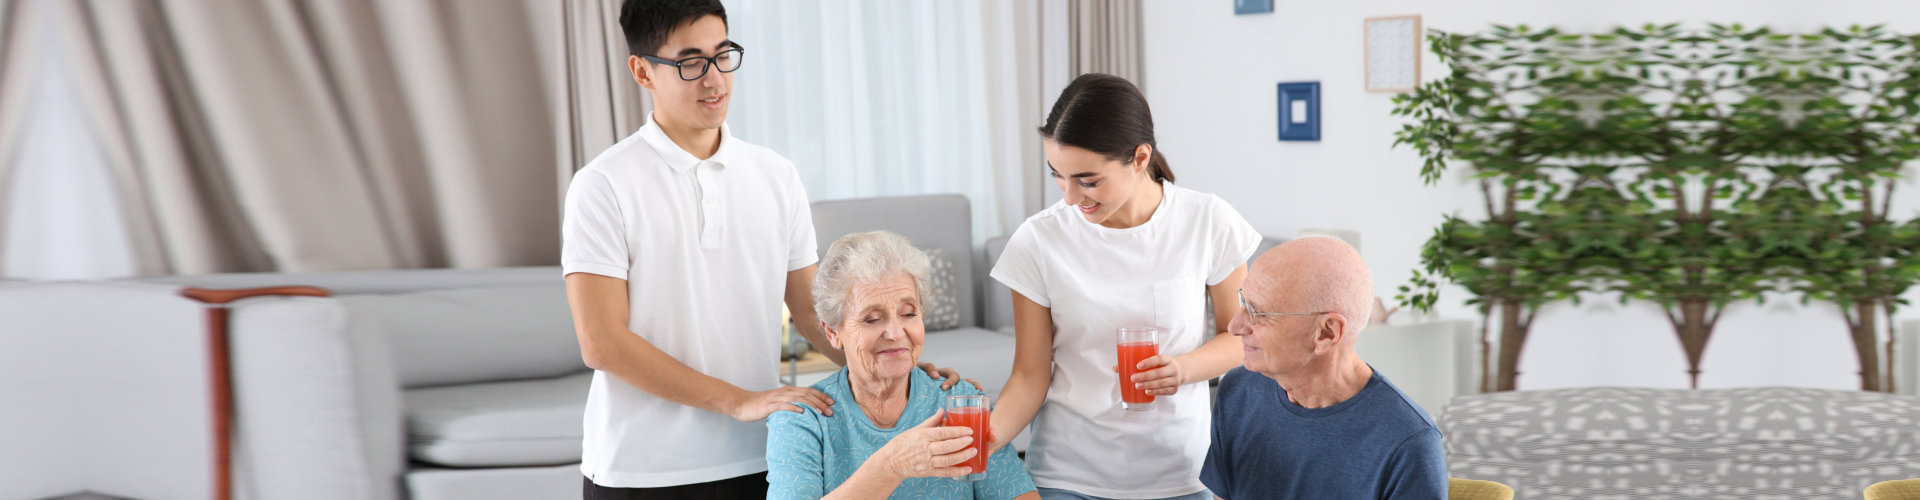 caregivers assisting the old couple